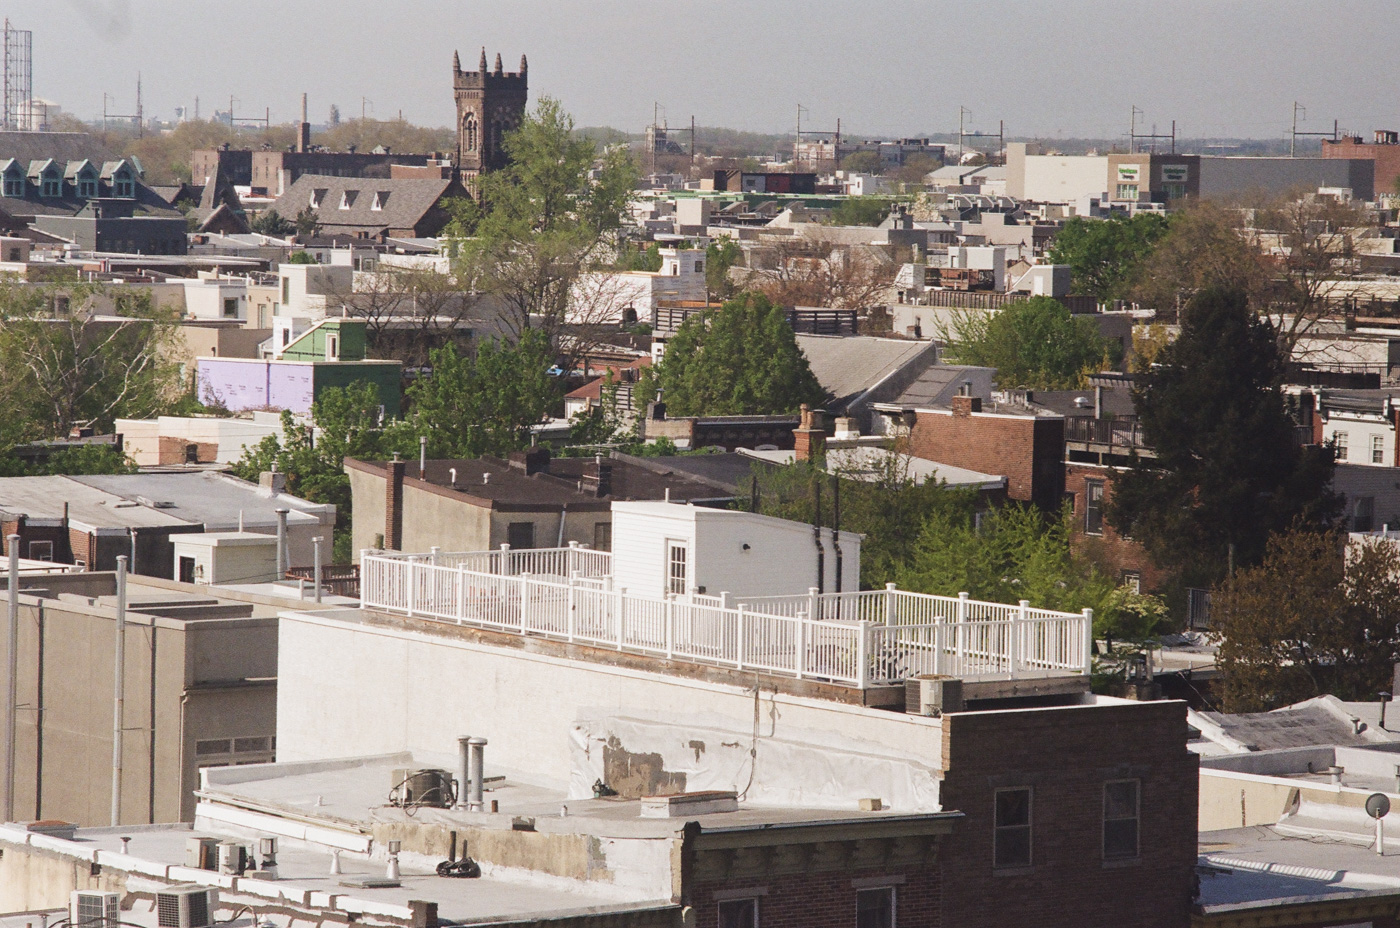 Roof Decks and Shiloh Baptist Church